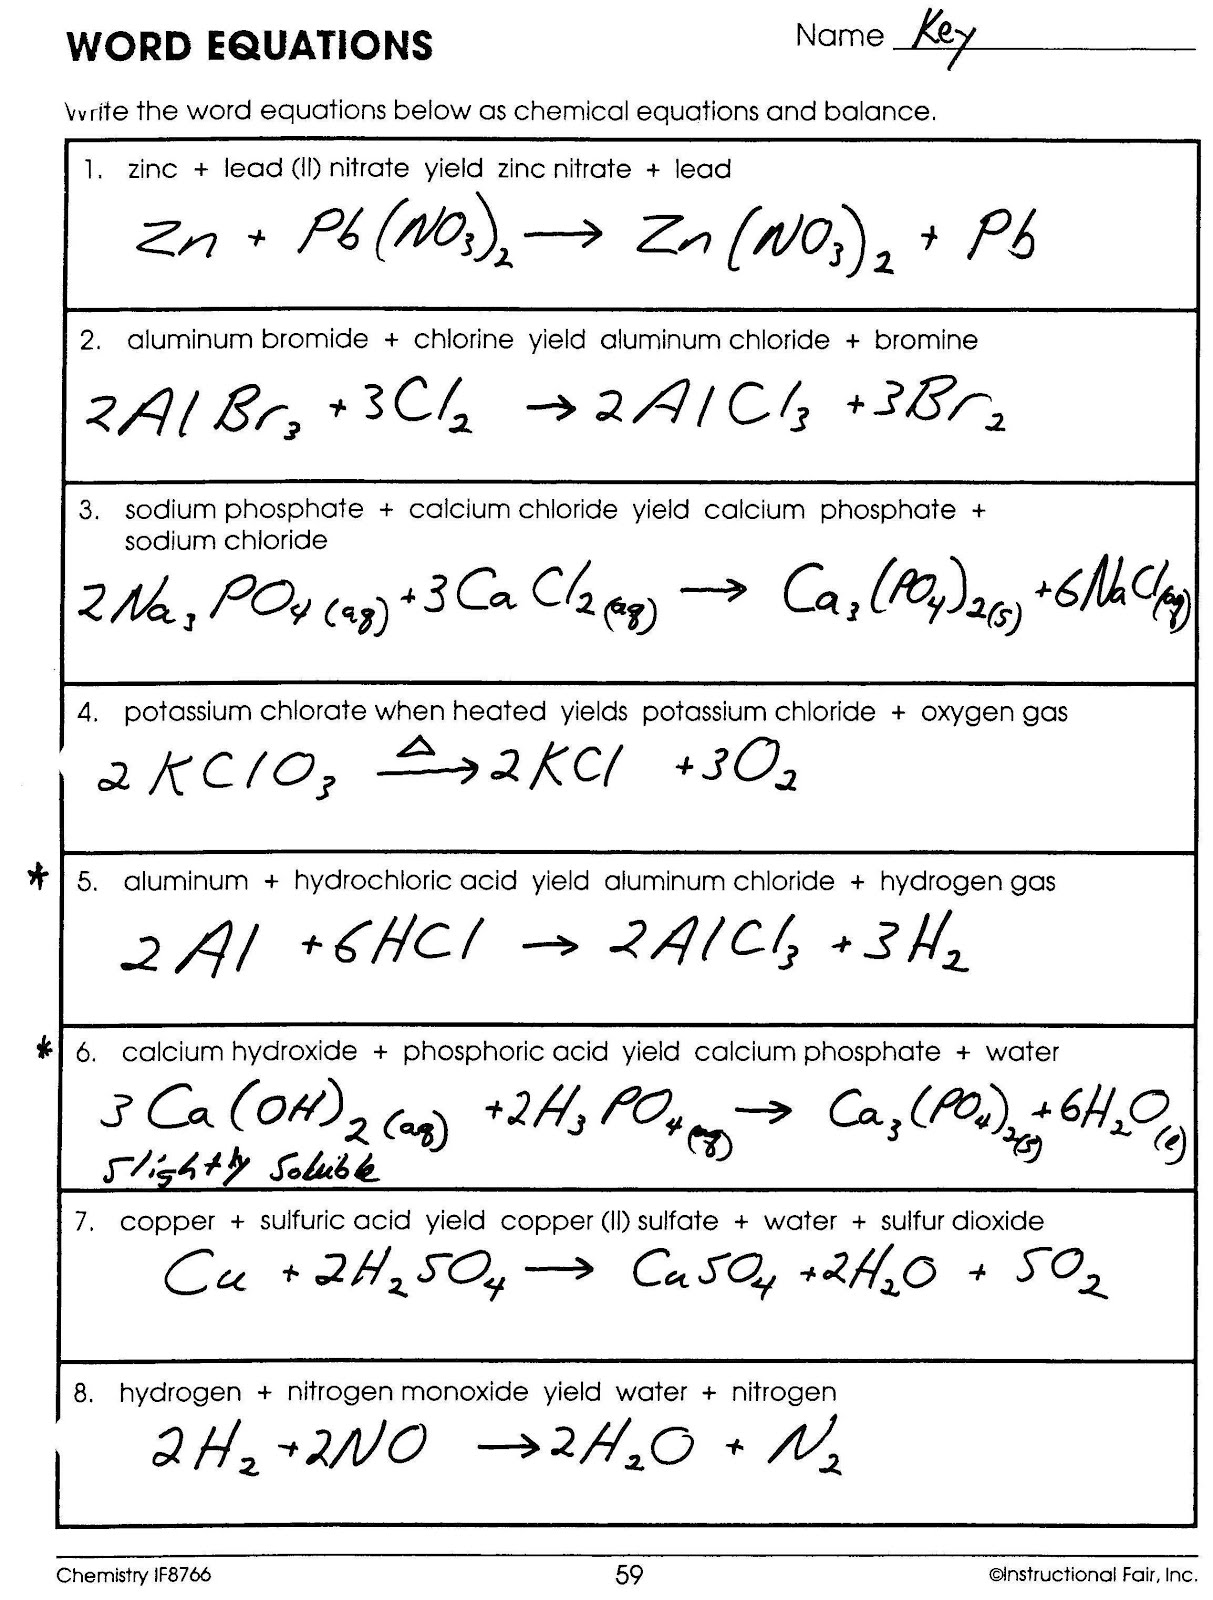 Mr Brueckners Chemistry Class HHS 201112 Key for Word – Balancing Chemical Equations Chapter 7 Worksheet 1 Answers